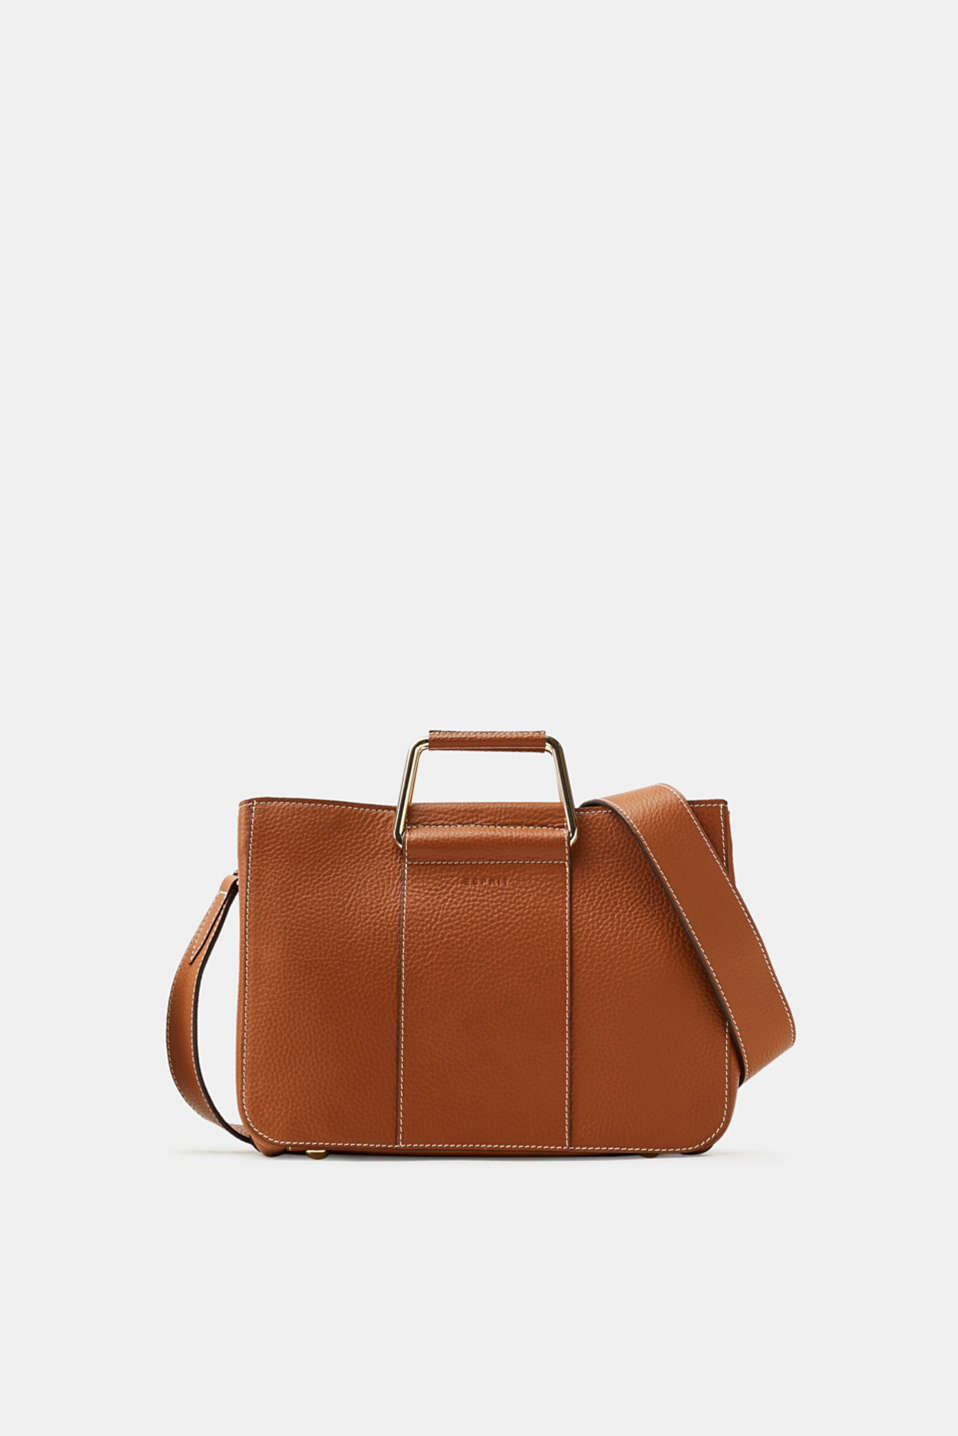 Esprit - City bag made of finely grained leather